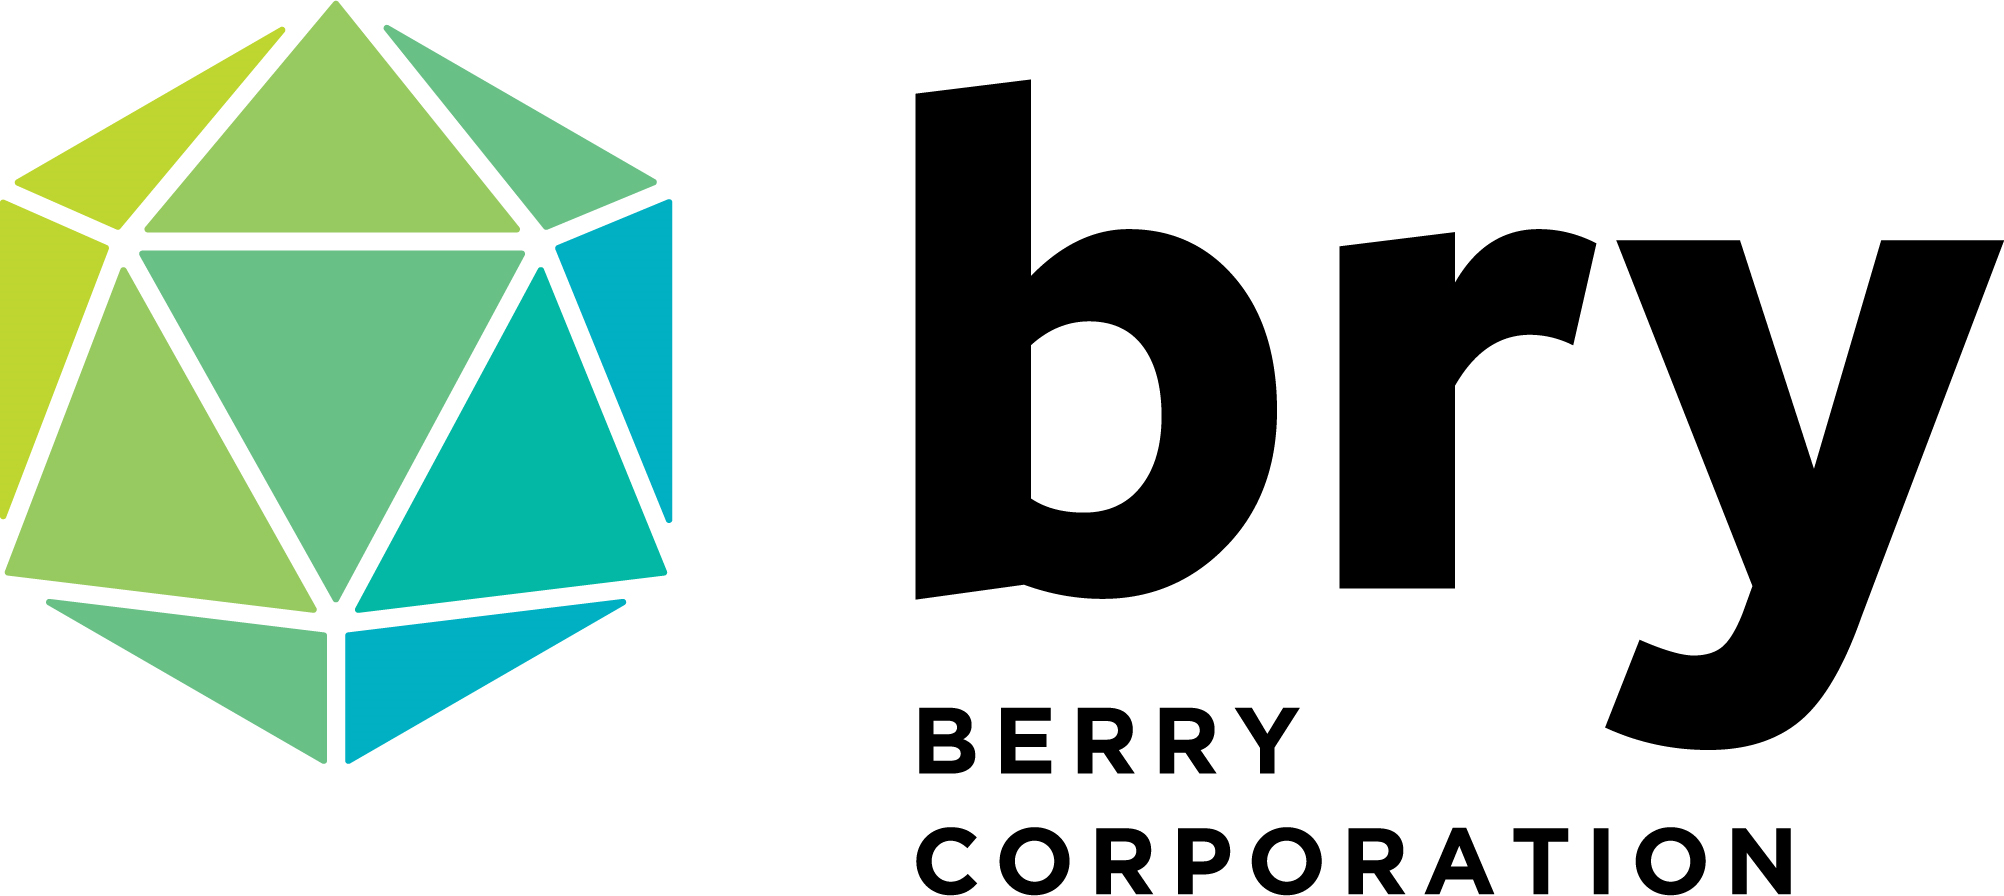 Berry Corporation (bry)